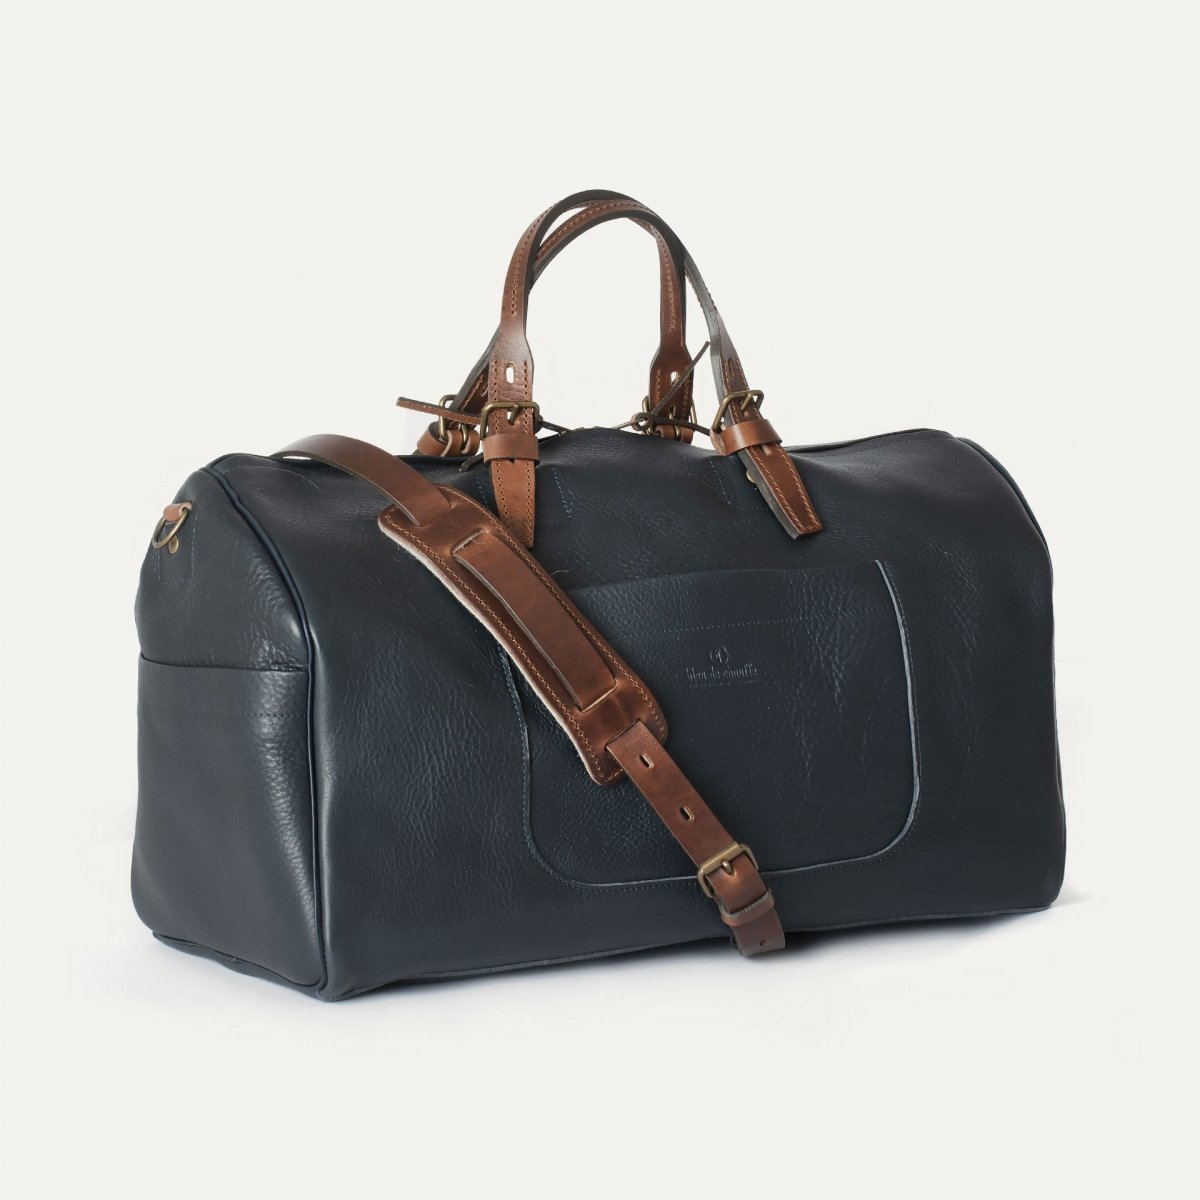 Hobo Travel bag - Navy Blue (image n°2)